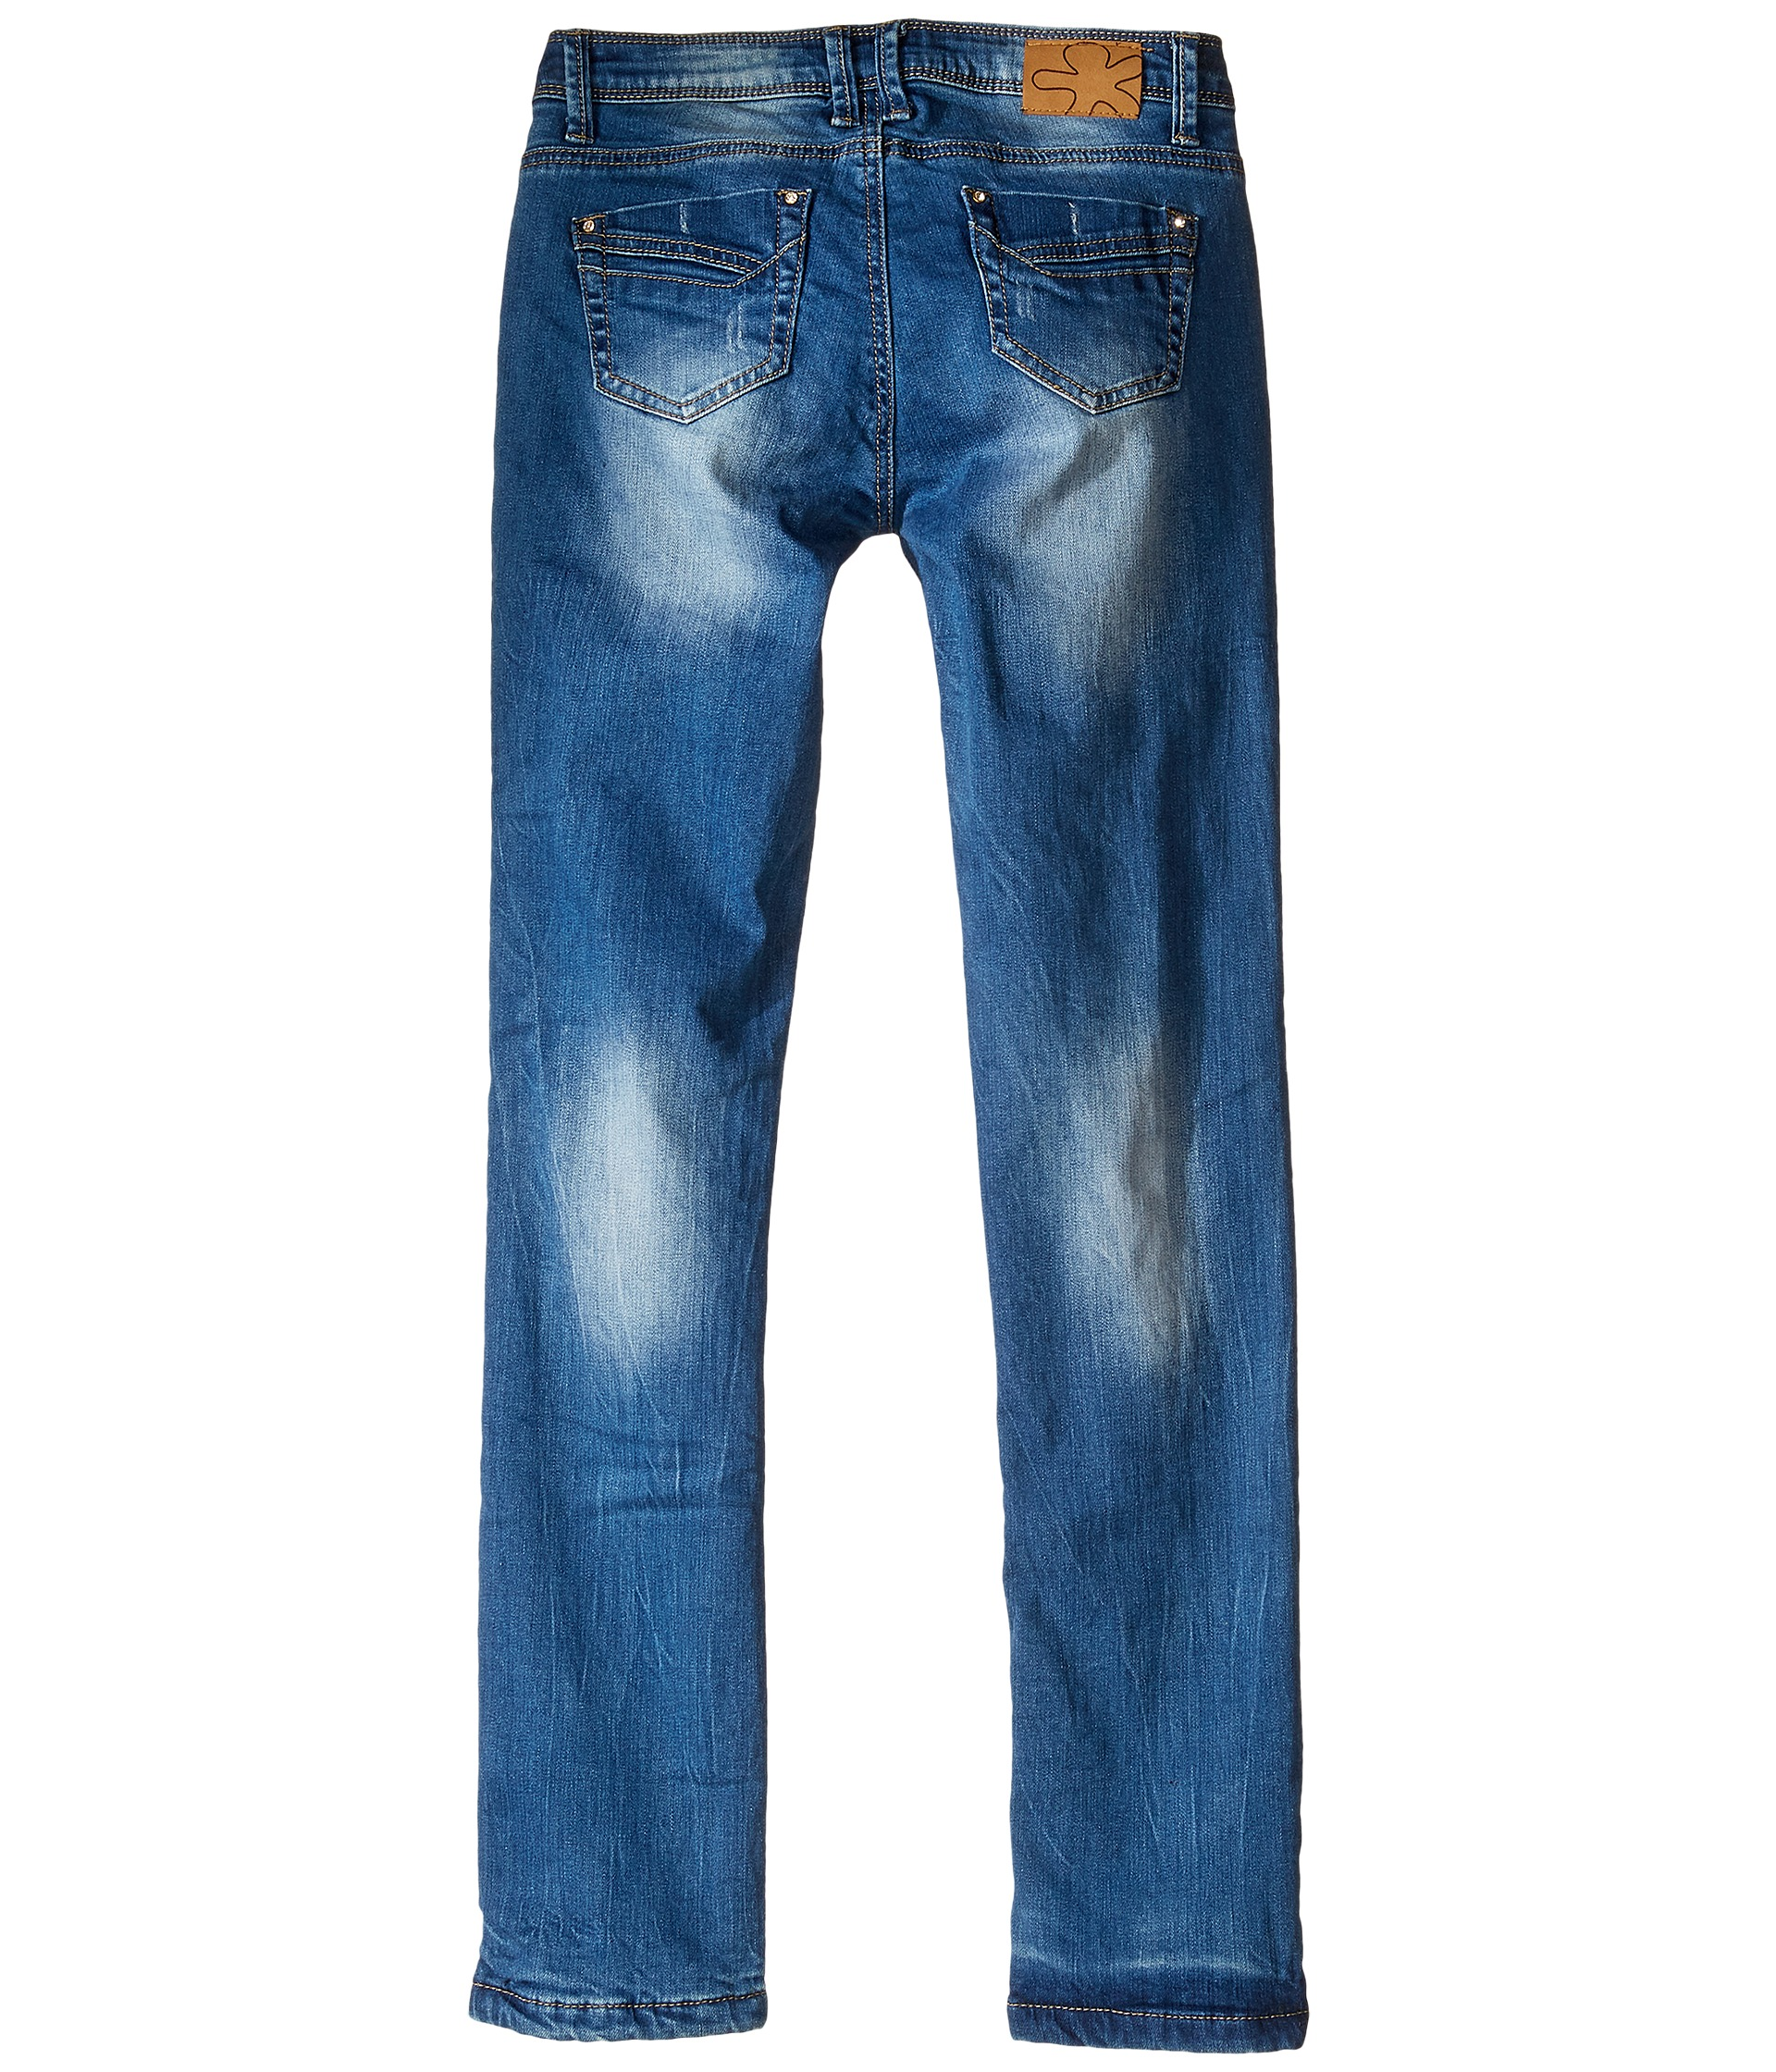 flannel lined jeans from Gap are a fashion favorite for a stylish look. Find flannel lined jeans in the latest designs and the hottest colors of the season.